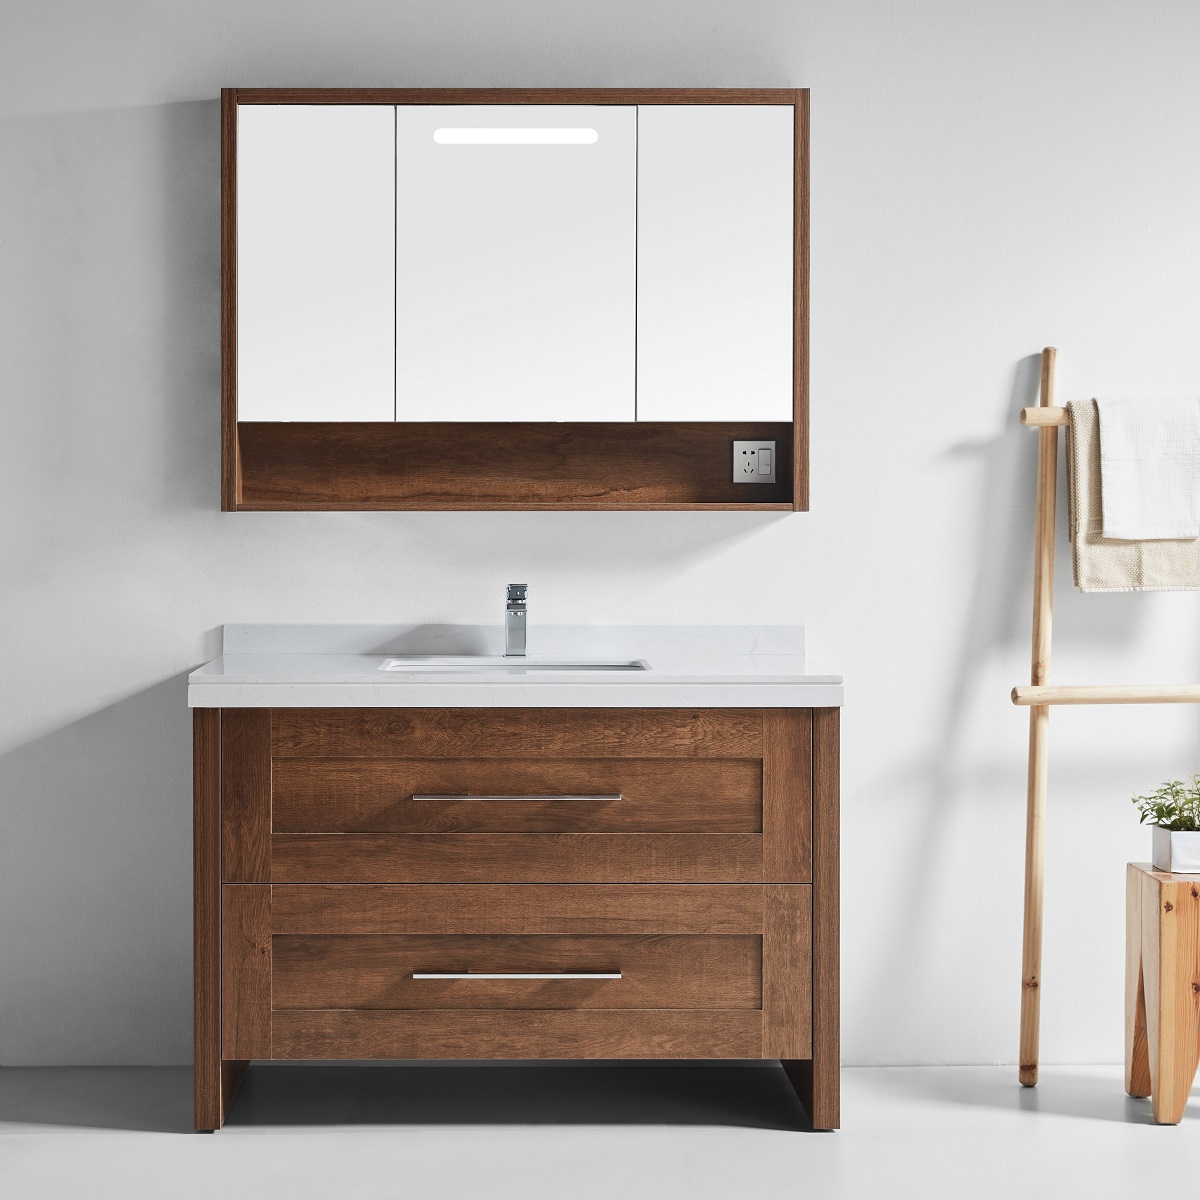 Malibu 1200 vanity in walnut